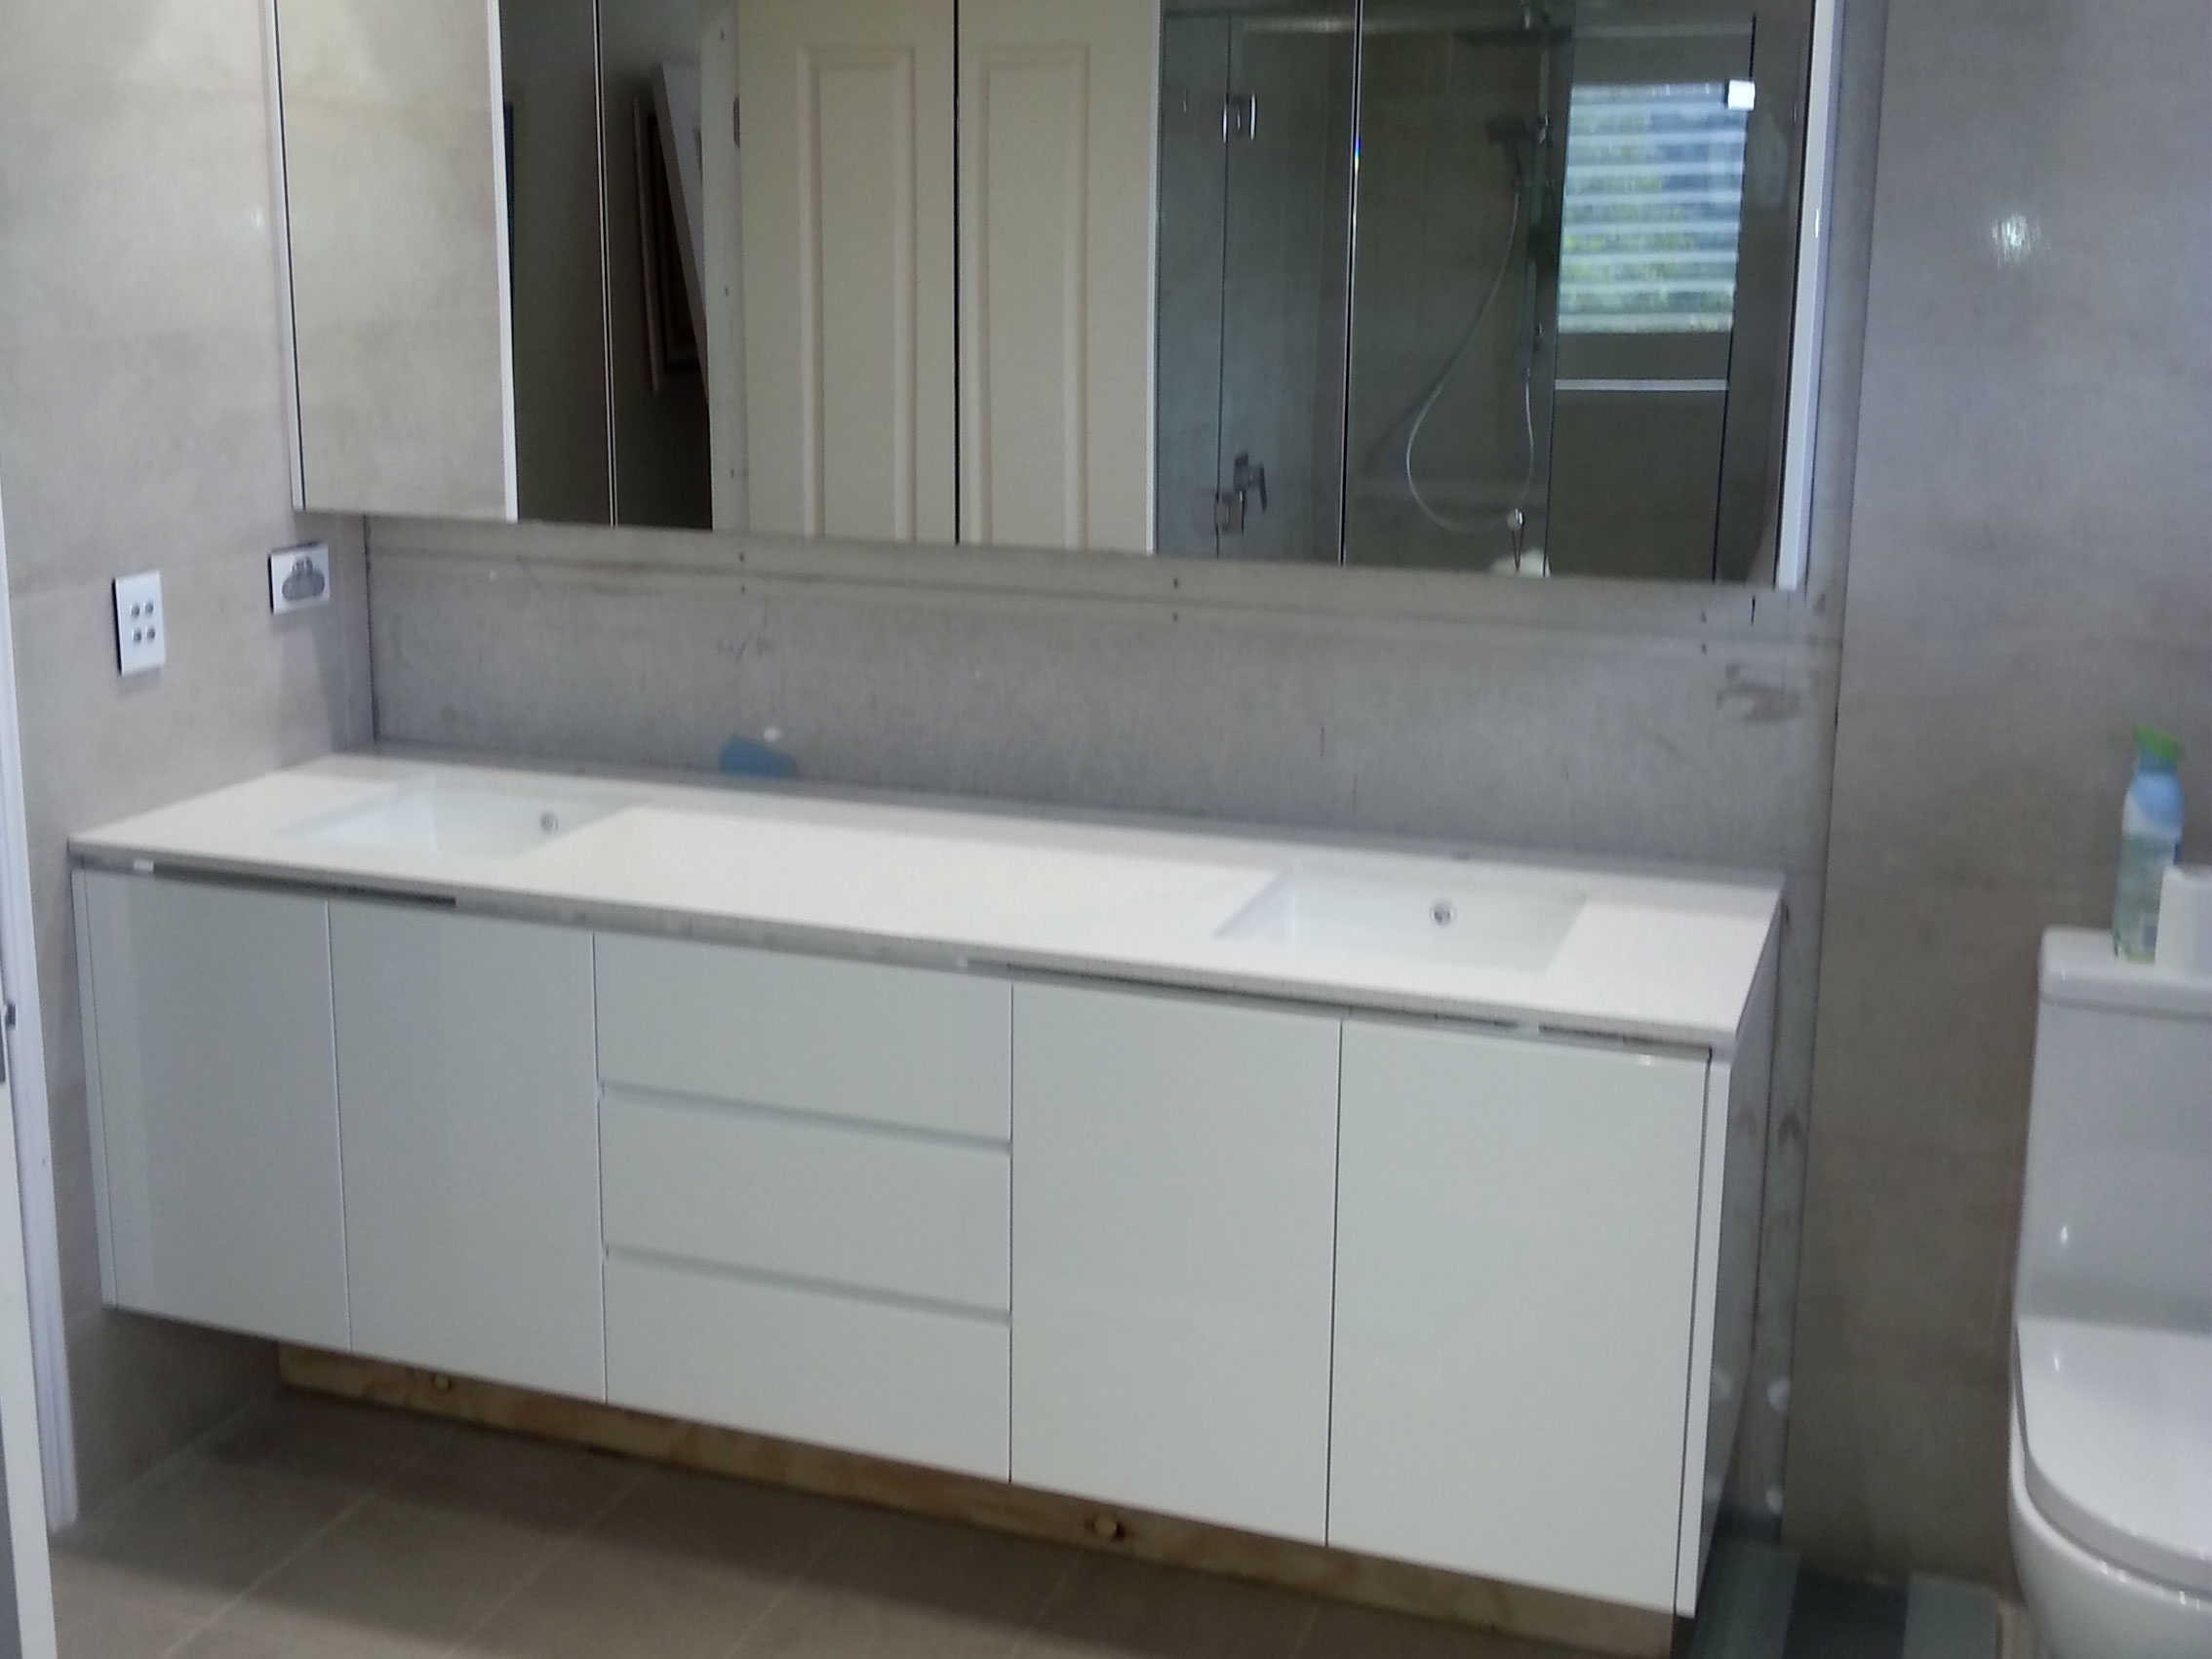 Popular Bathroom Vanity In Brisbane Region QLD  Gumtree Australia Free Local